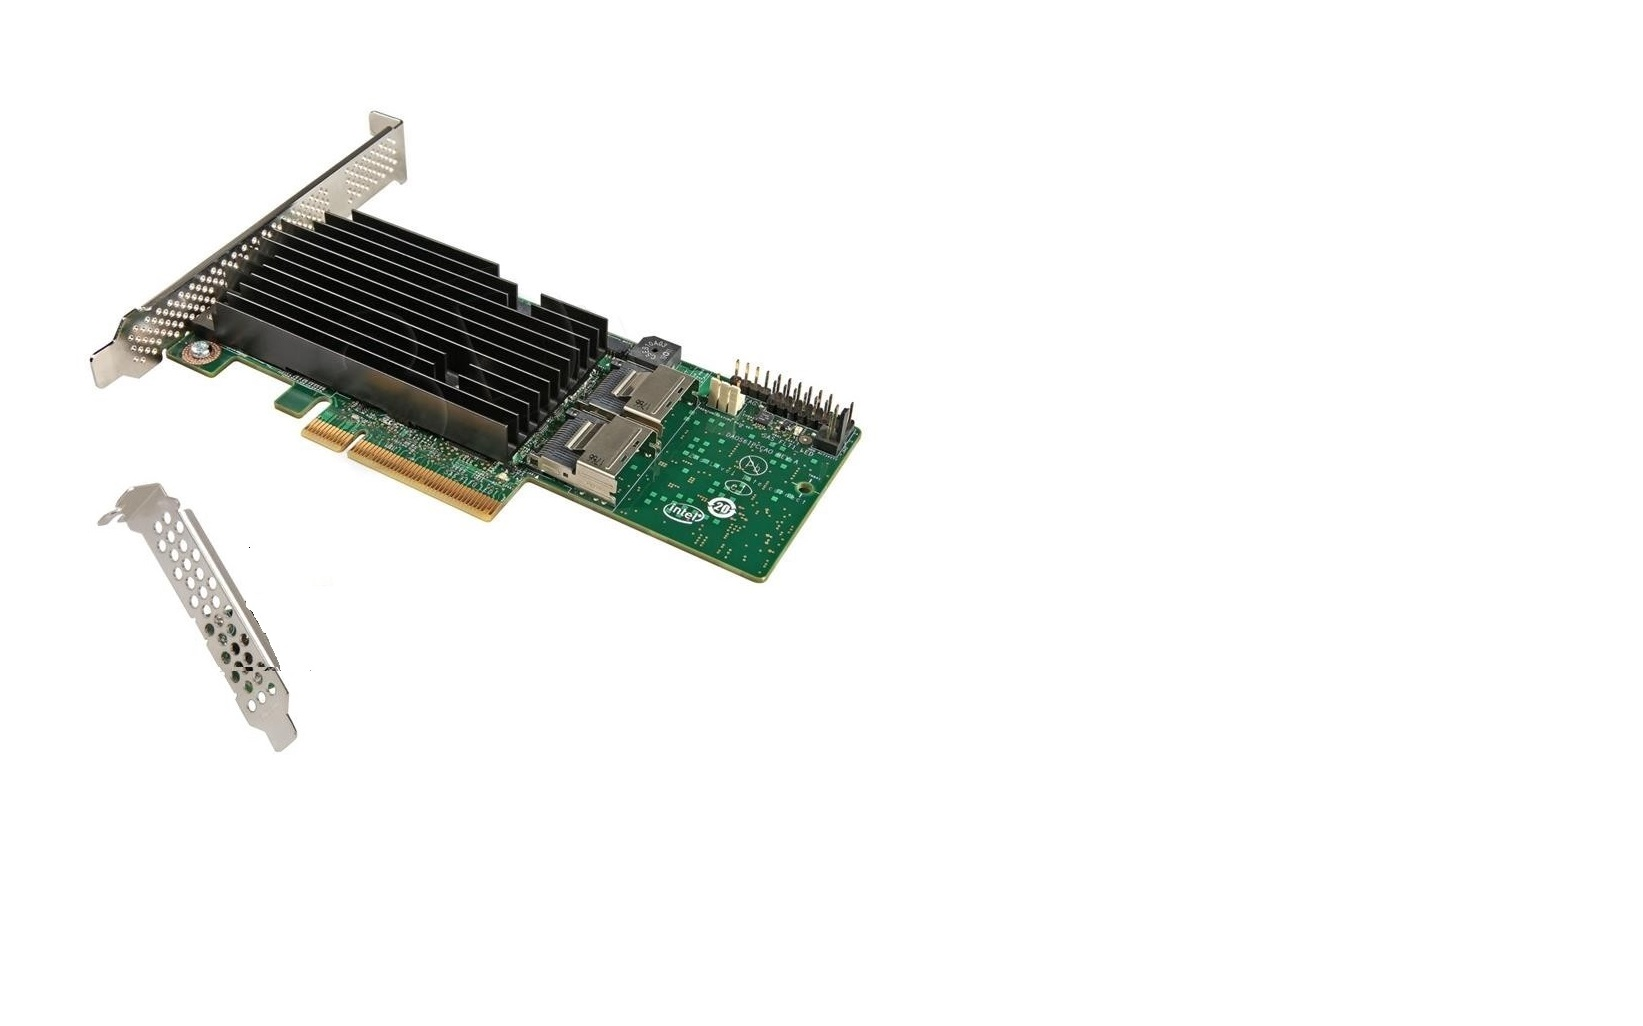 Intel 8-Ports SAS Controller Serial Attached SCSI PCI Express 2.0 x8 Plug-in Card RAID RMS25PB080